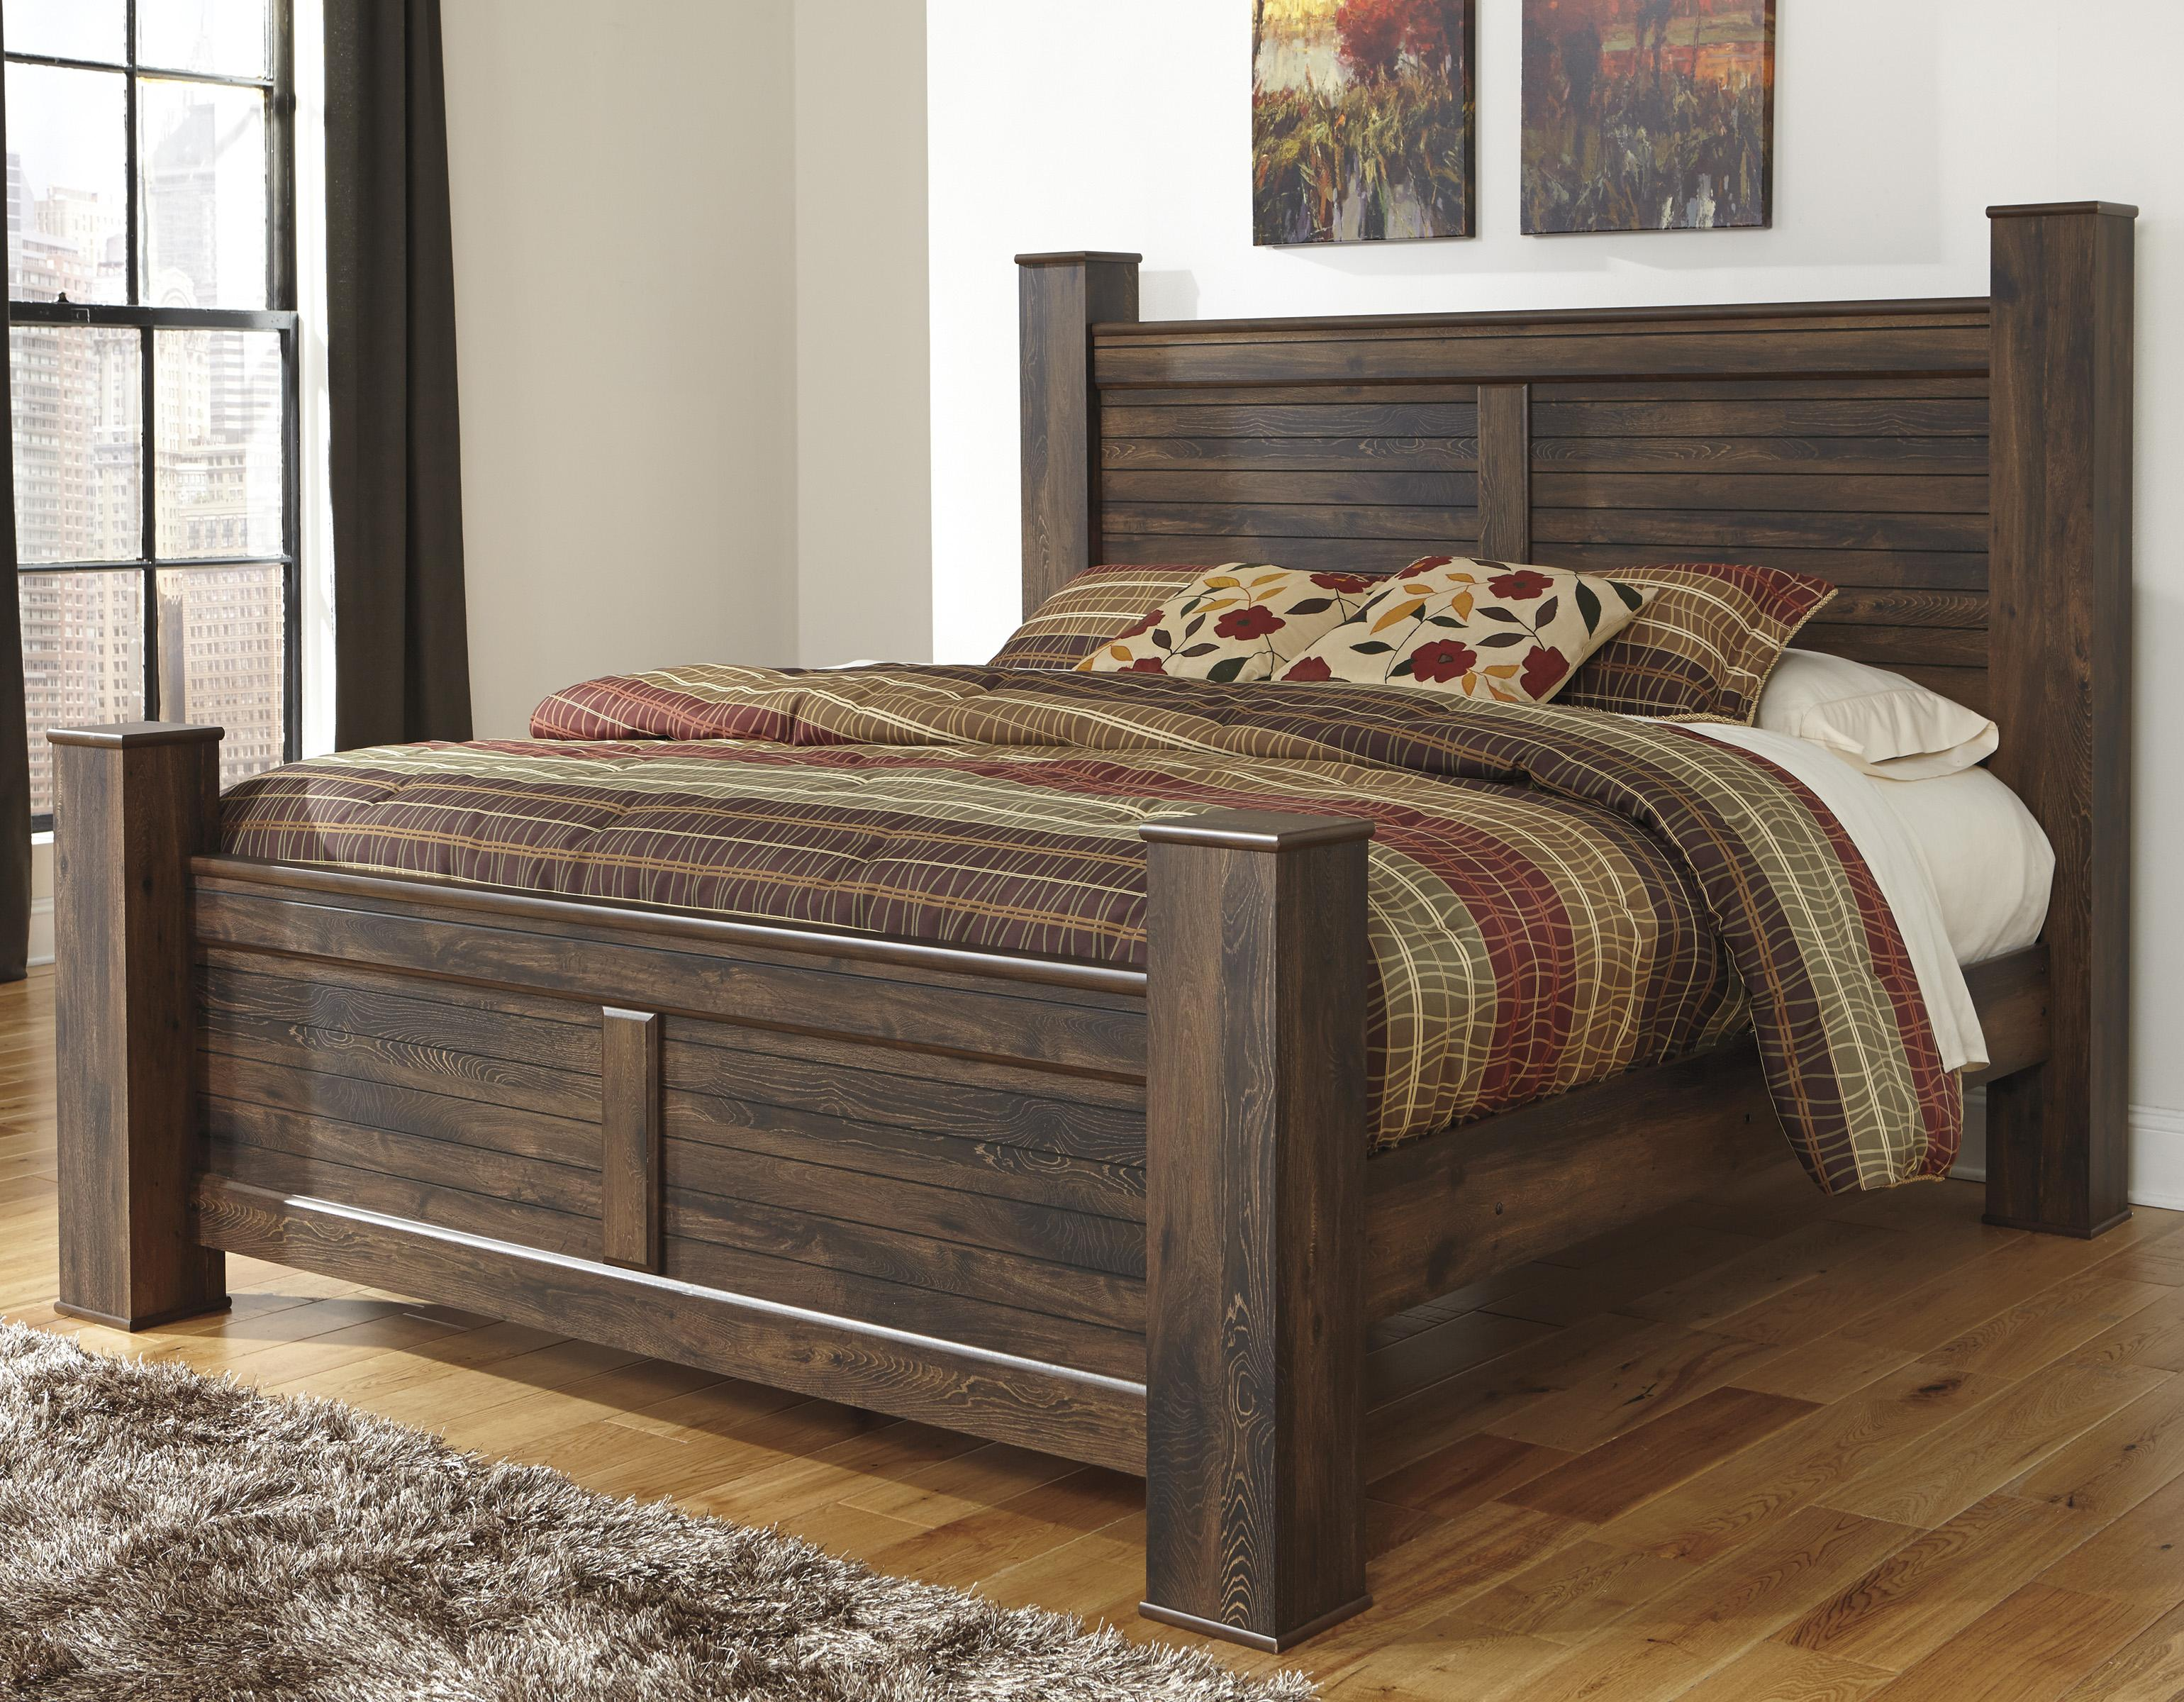 King Bed With Posts Quinden Rustic King Poster Bed By Signature Design By Ashley At Royal Furniture